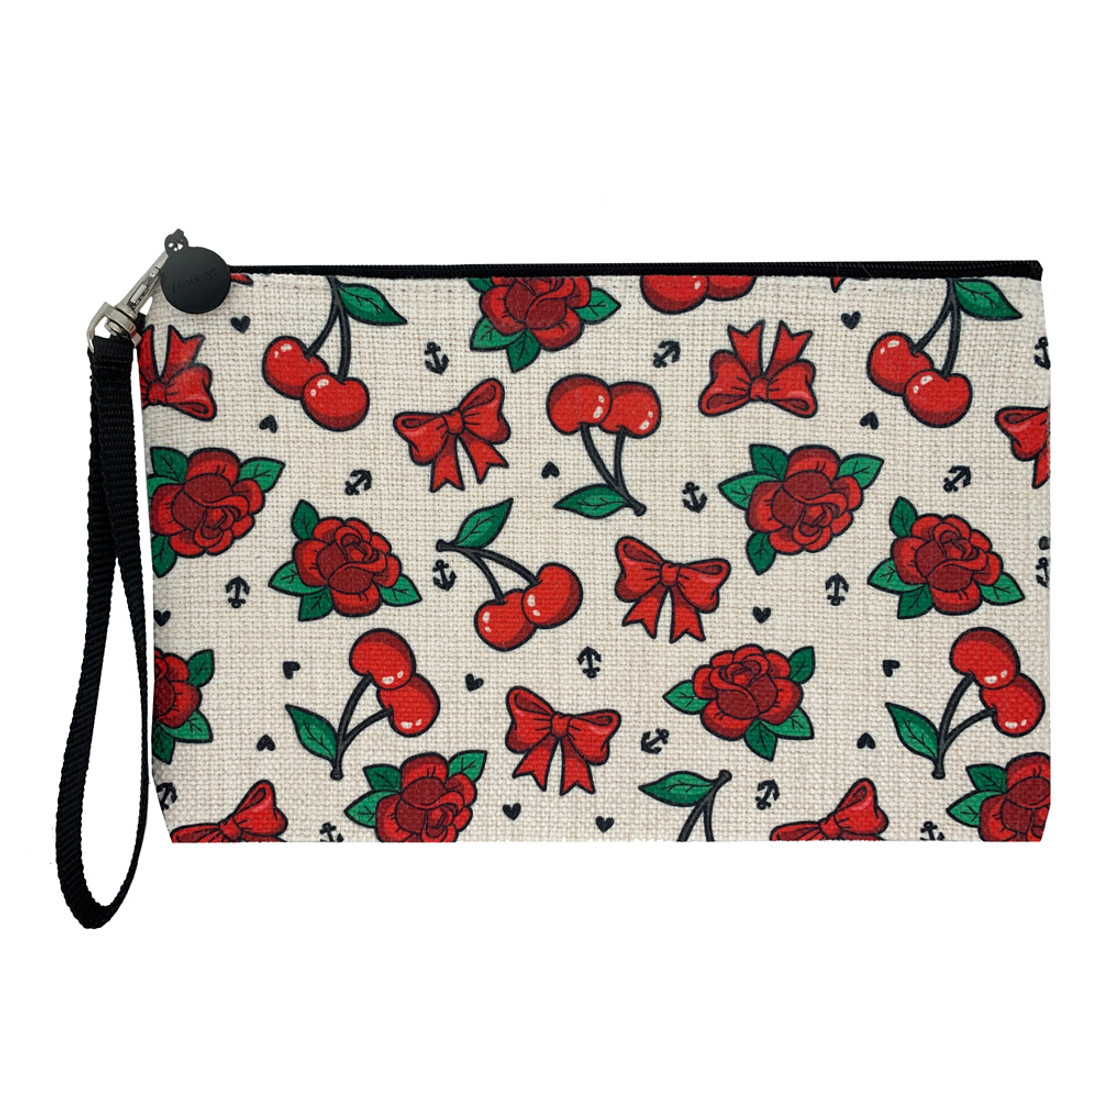 Cherries Bows and Red Roses Linen Makeup Bag